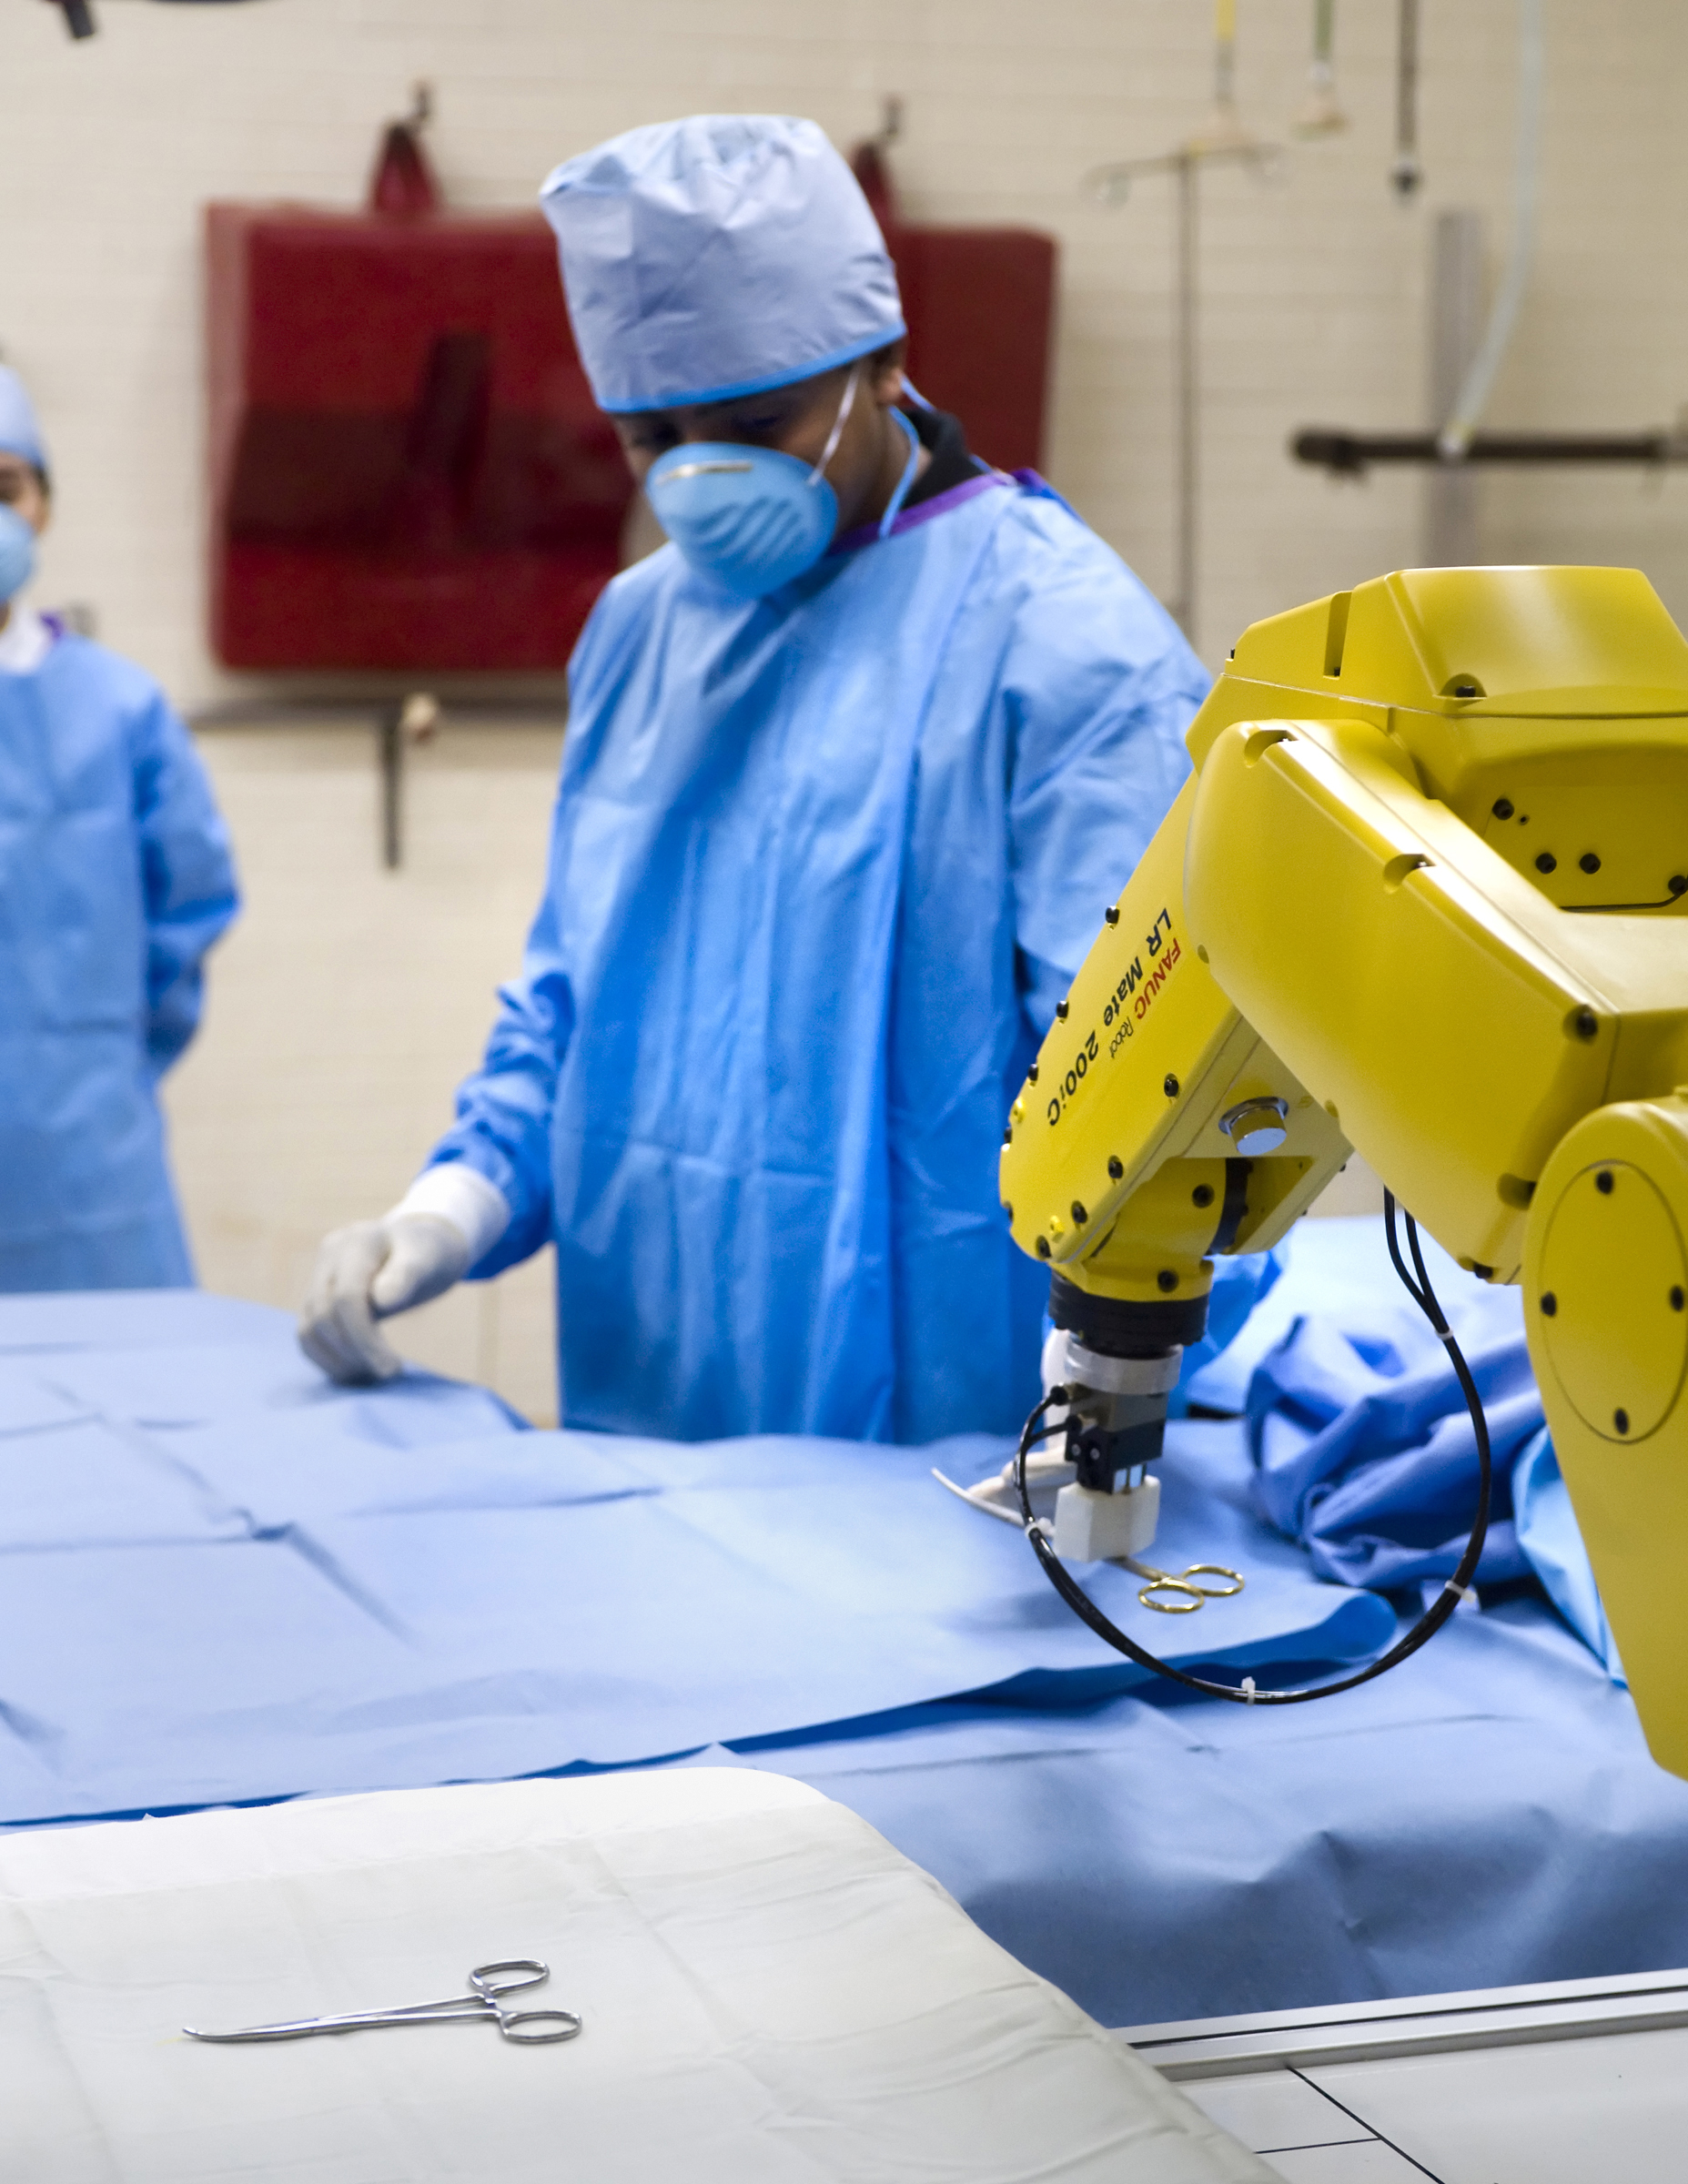 Future Surgeons May Use Robotic Nurse Gesture Recognition